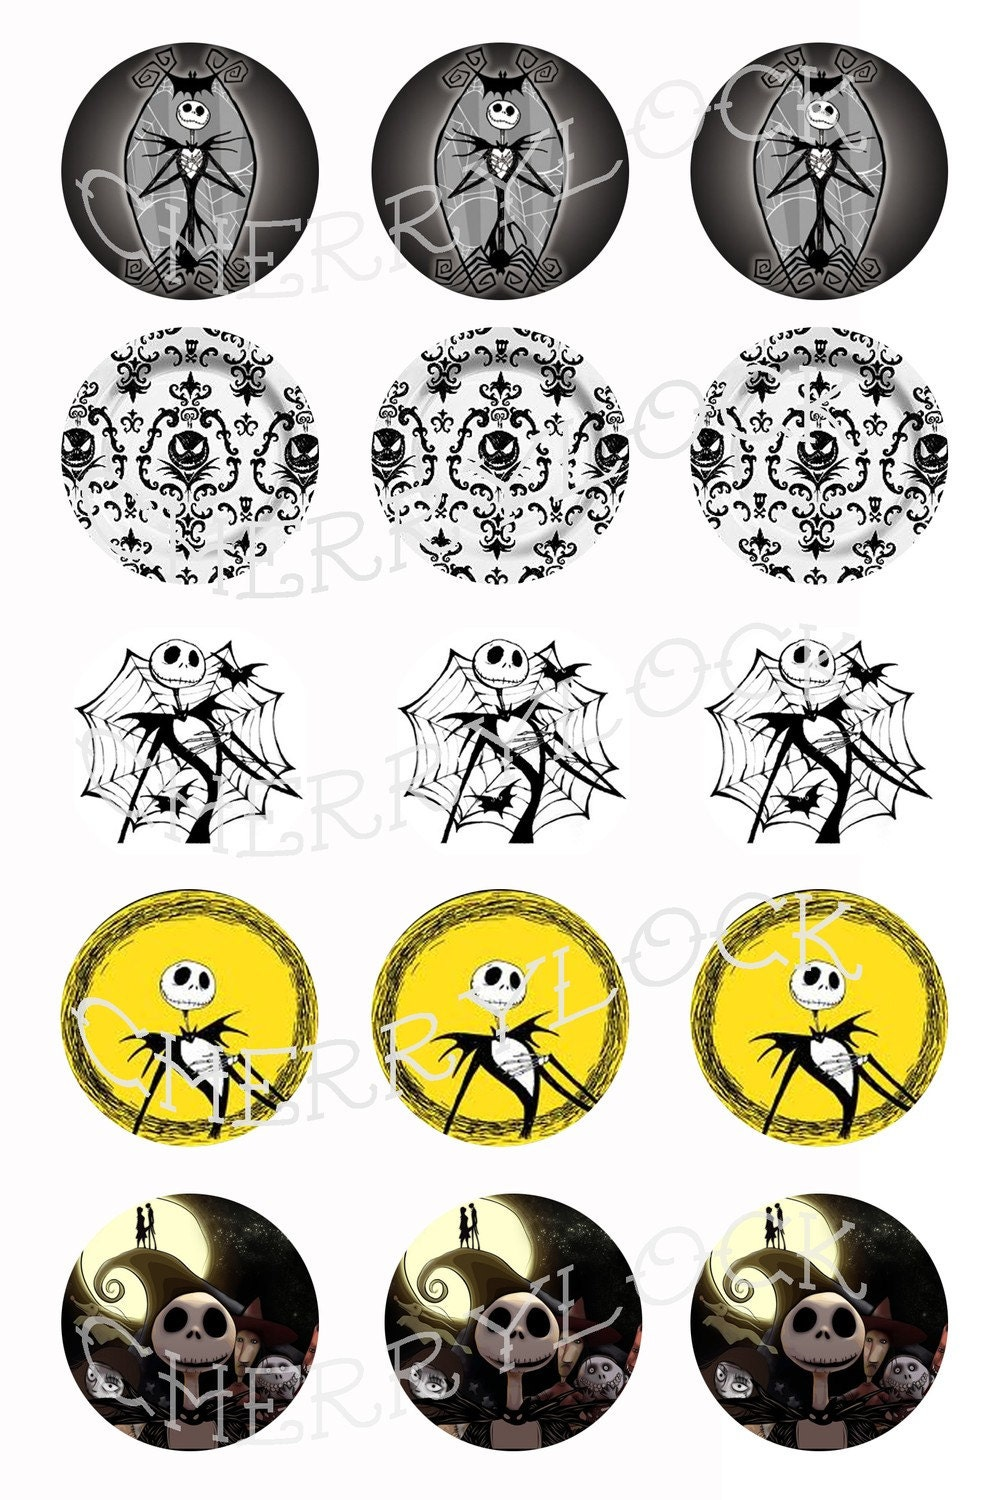 Digital Printable Bottle Cap Image Sheet Nightmare Before